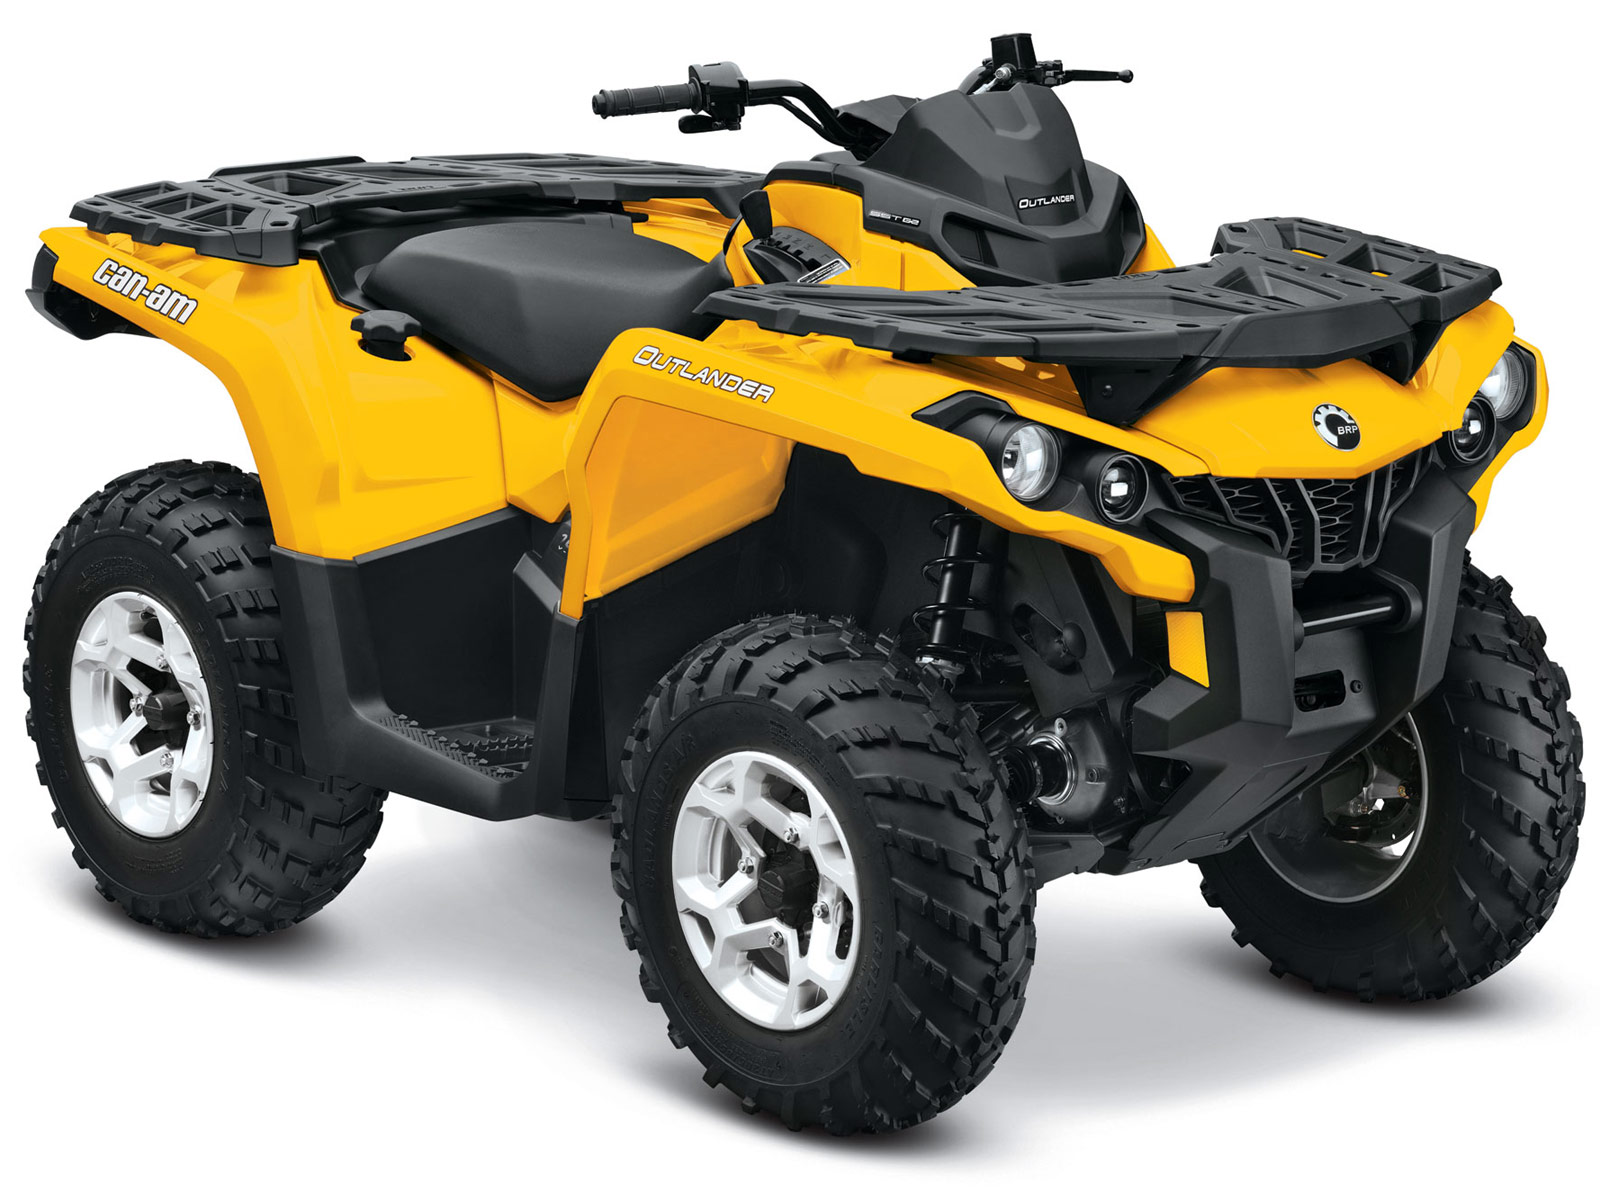 outlander dps 1000 2013 can am atv pictures. Black Bedroom Furniture Sets. Home Design Ideas